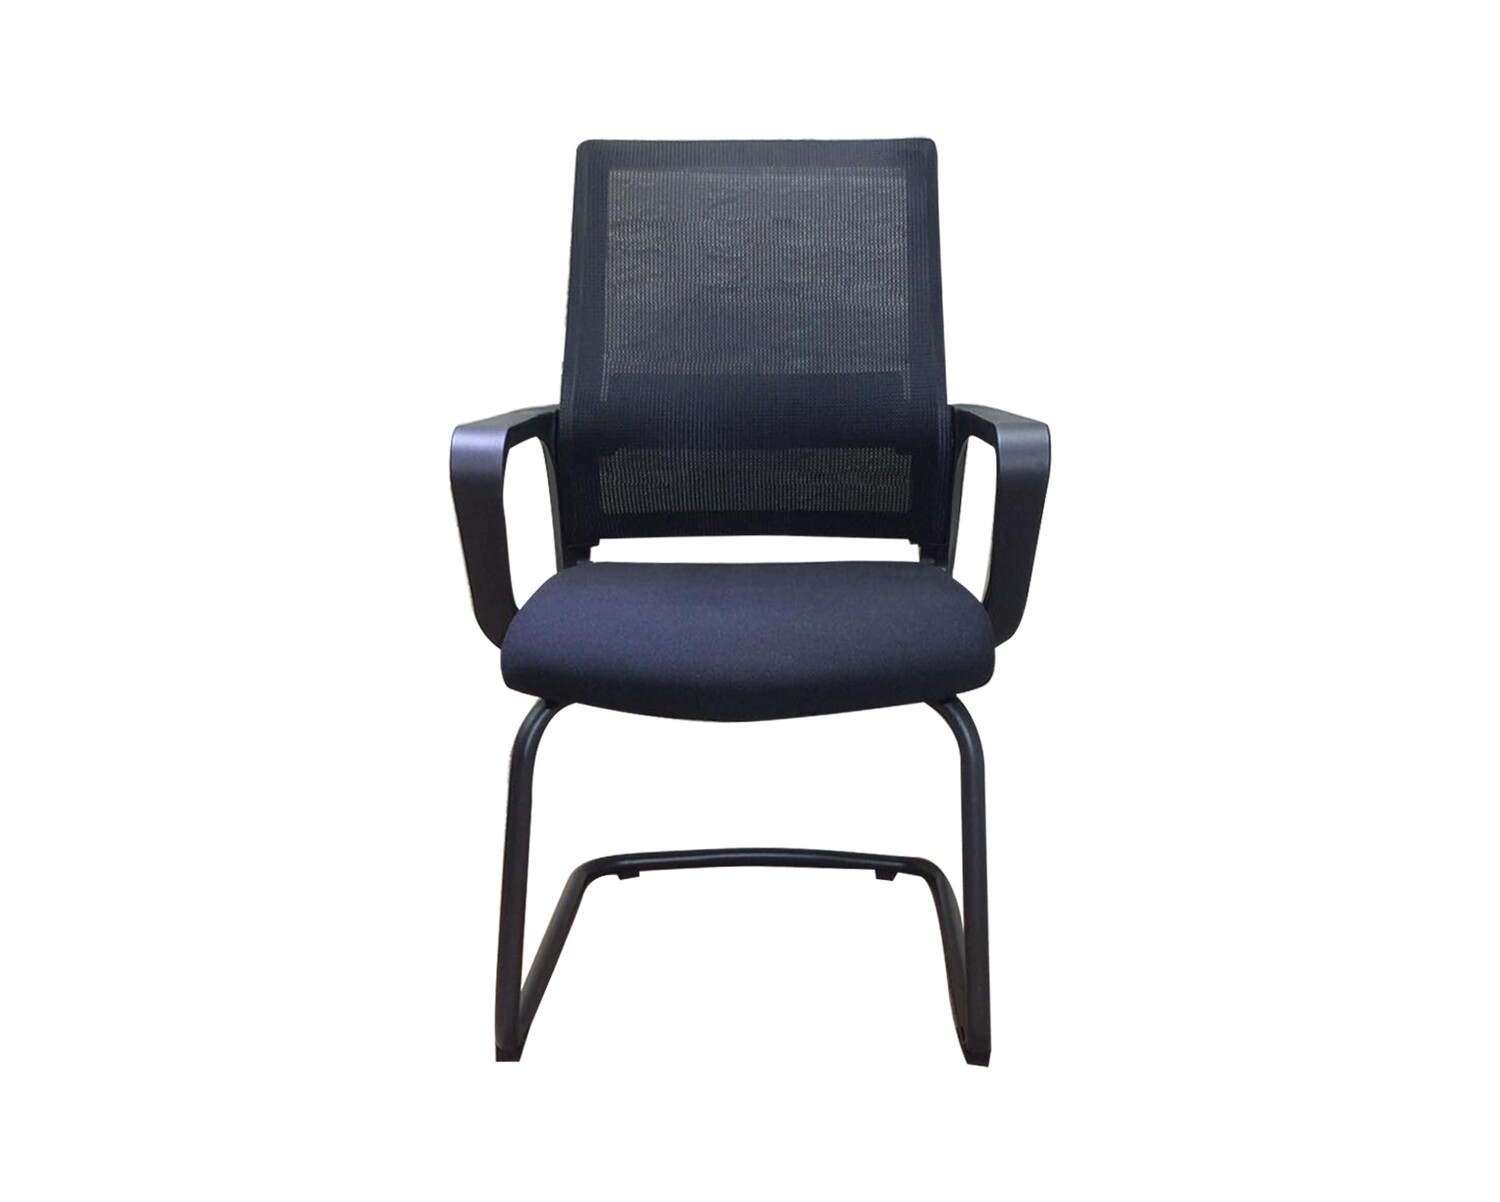 Ofix Deluxe-8W Mid Back Mesh Waiting Chair (Black, White+Blue)